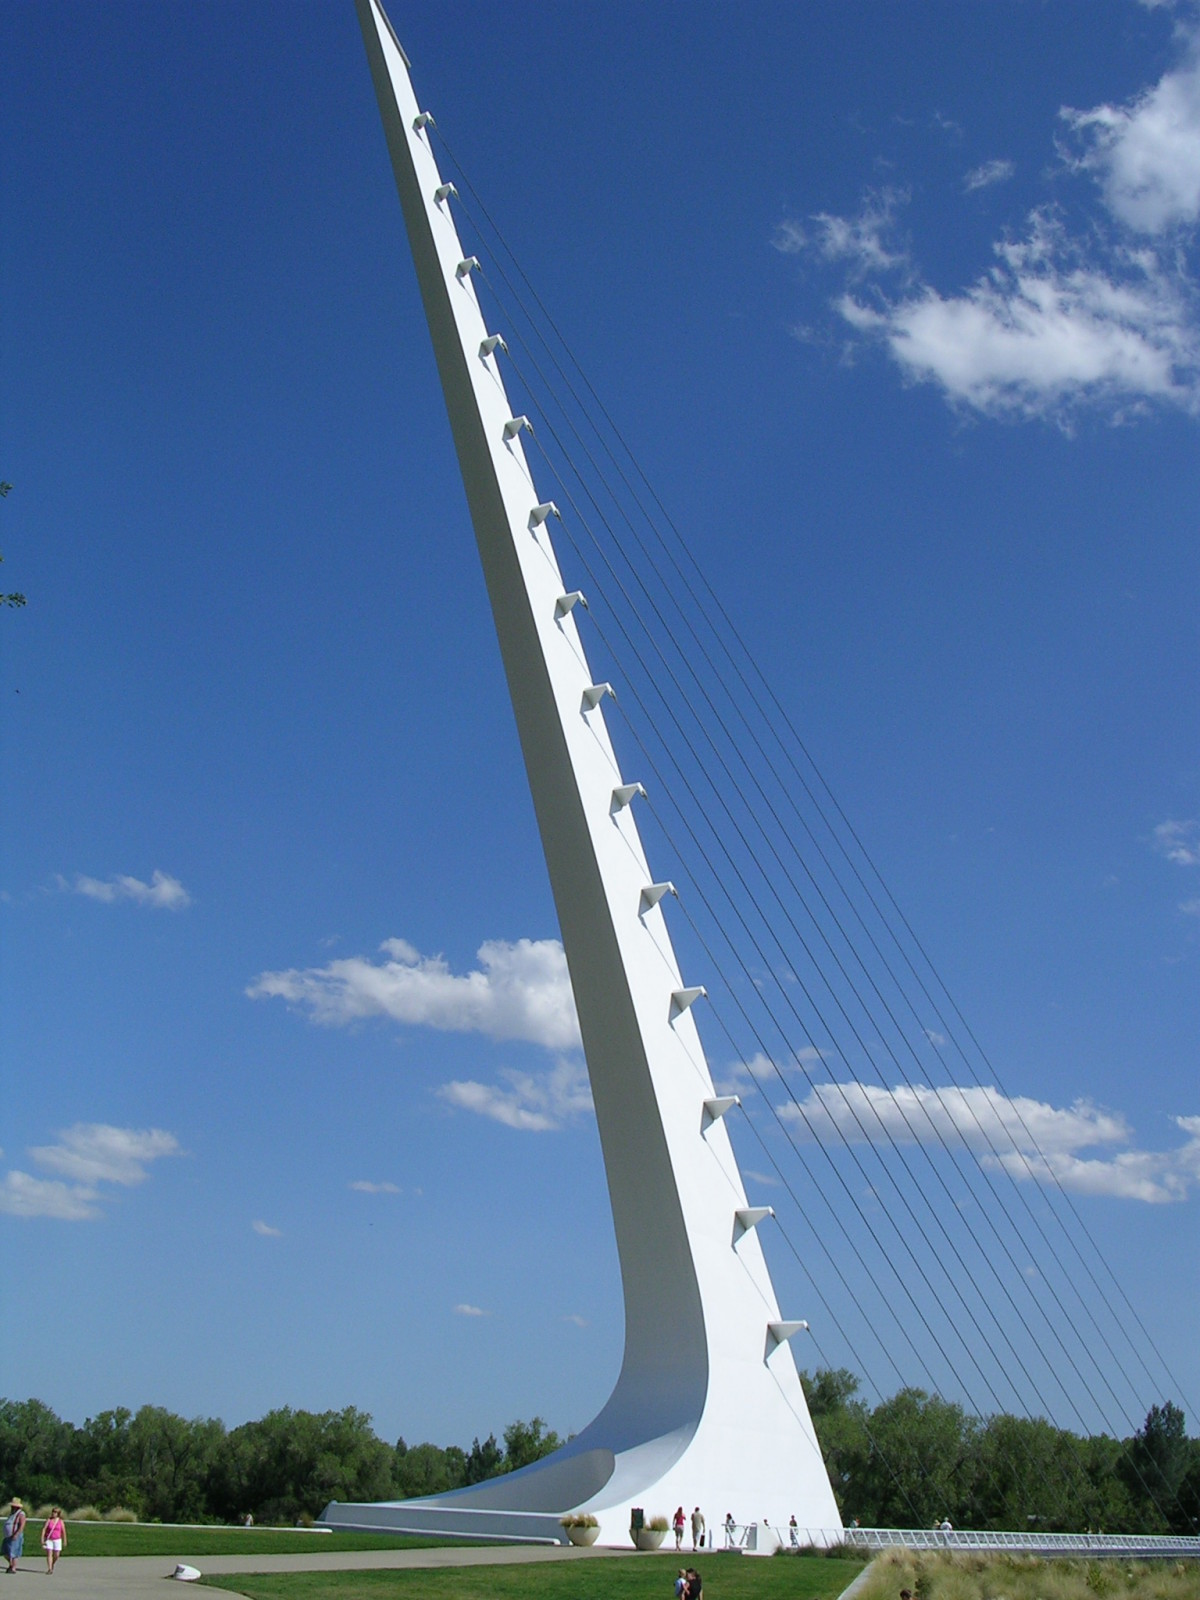 Redding's Sundial Bridge